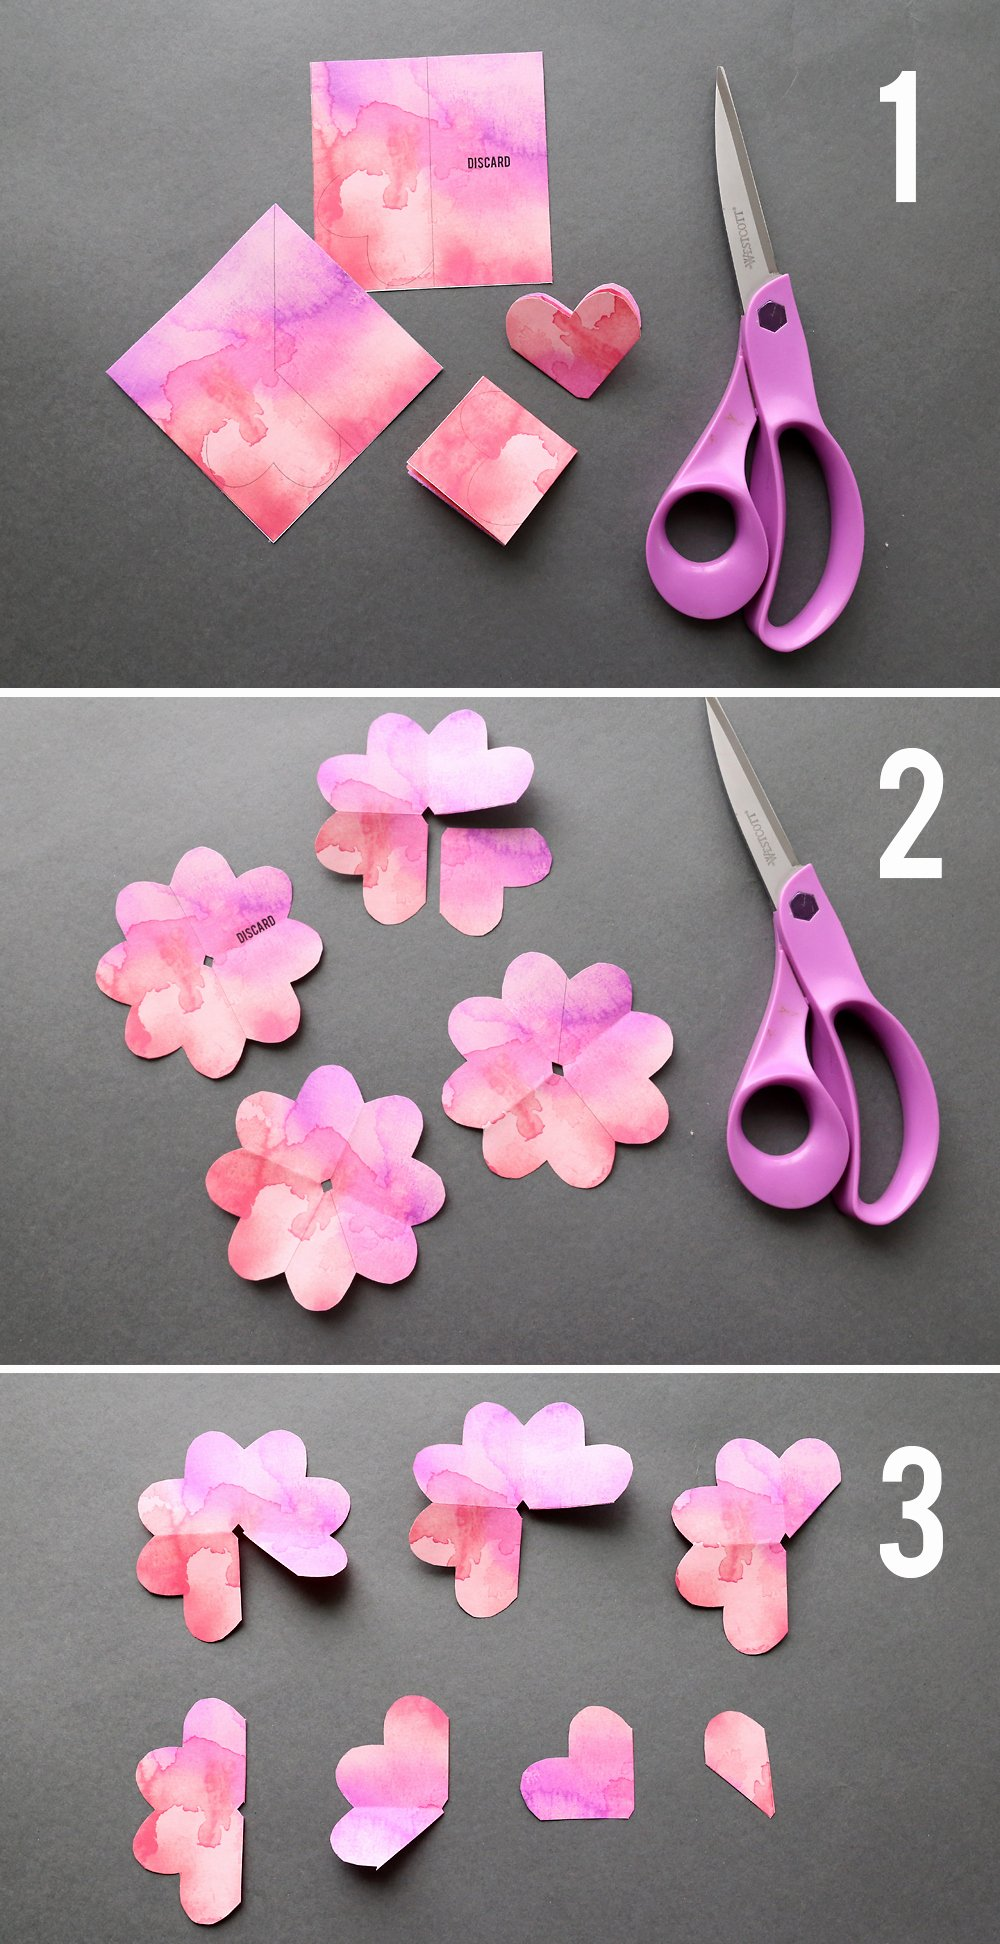 Diy Paper Flower Template Luxury Make Gorgeous Paper Roses with This Free Paper Rose